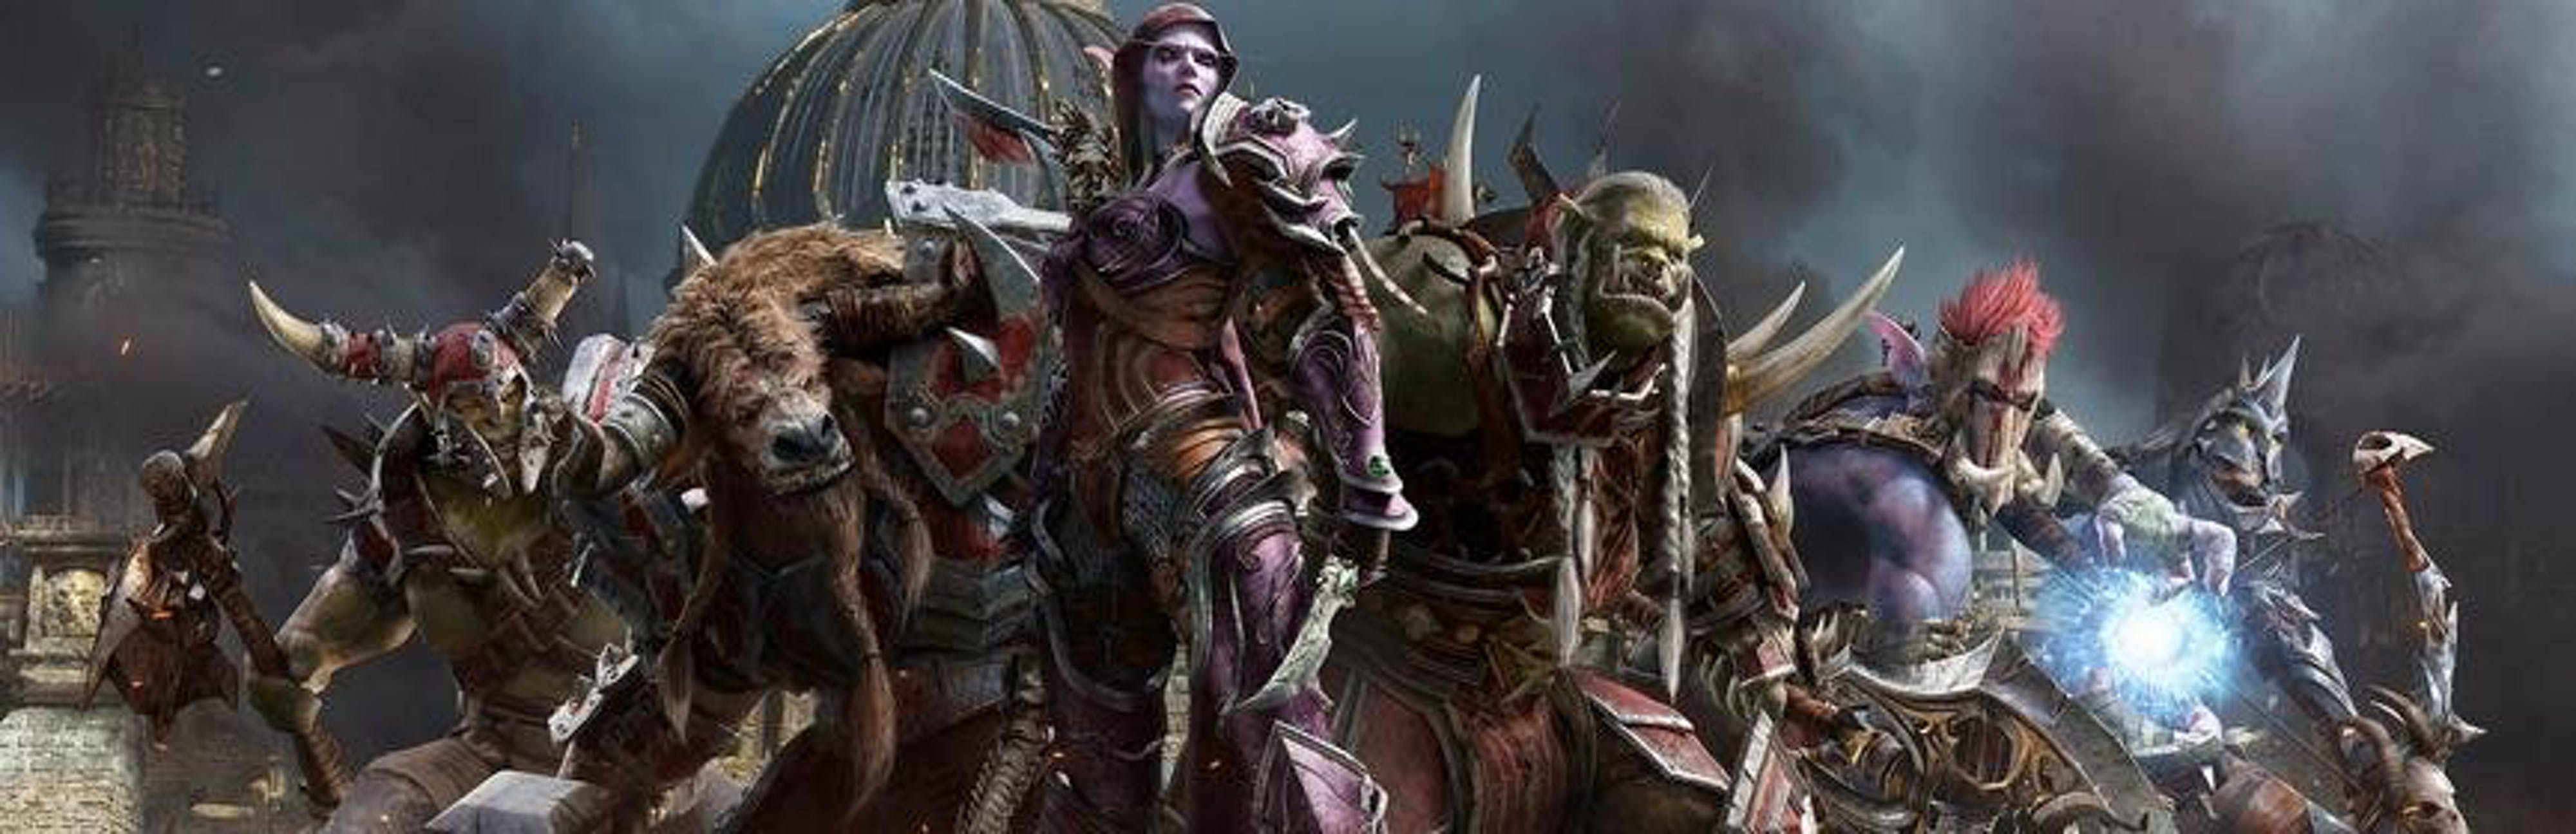 From World of Warcraft: Key group visual from The Battle for Azeroth, courtesy of Blizzard Entertainment.